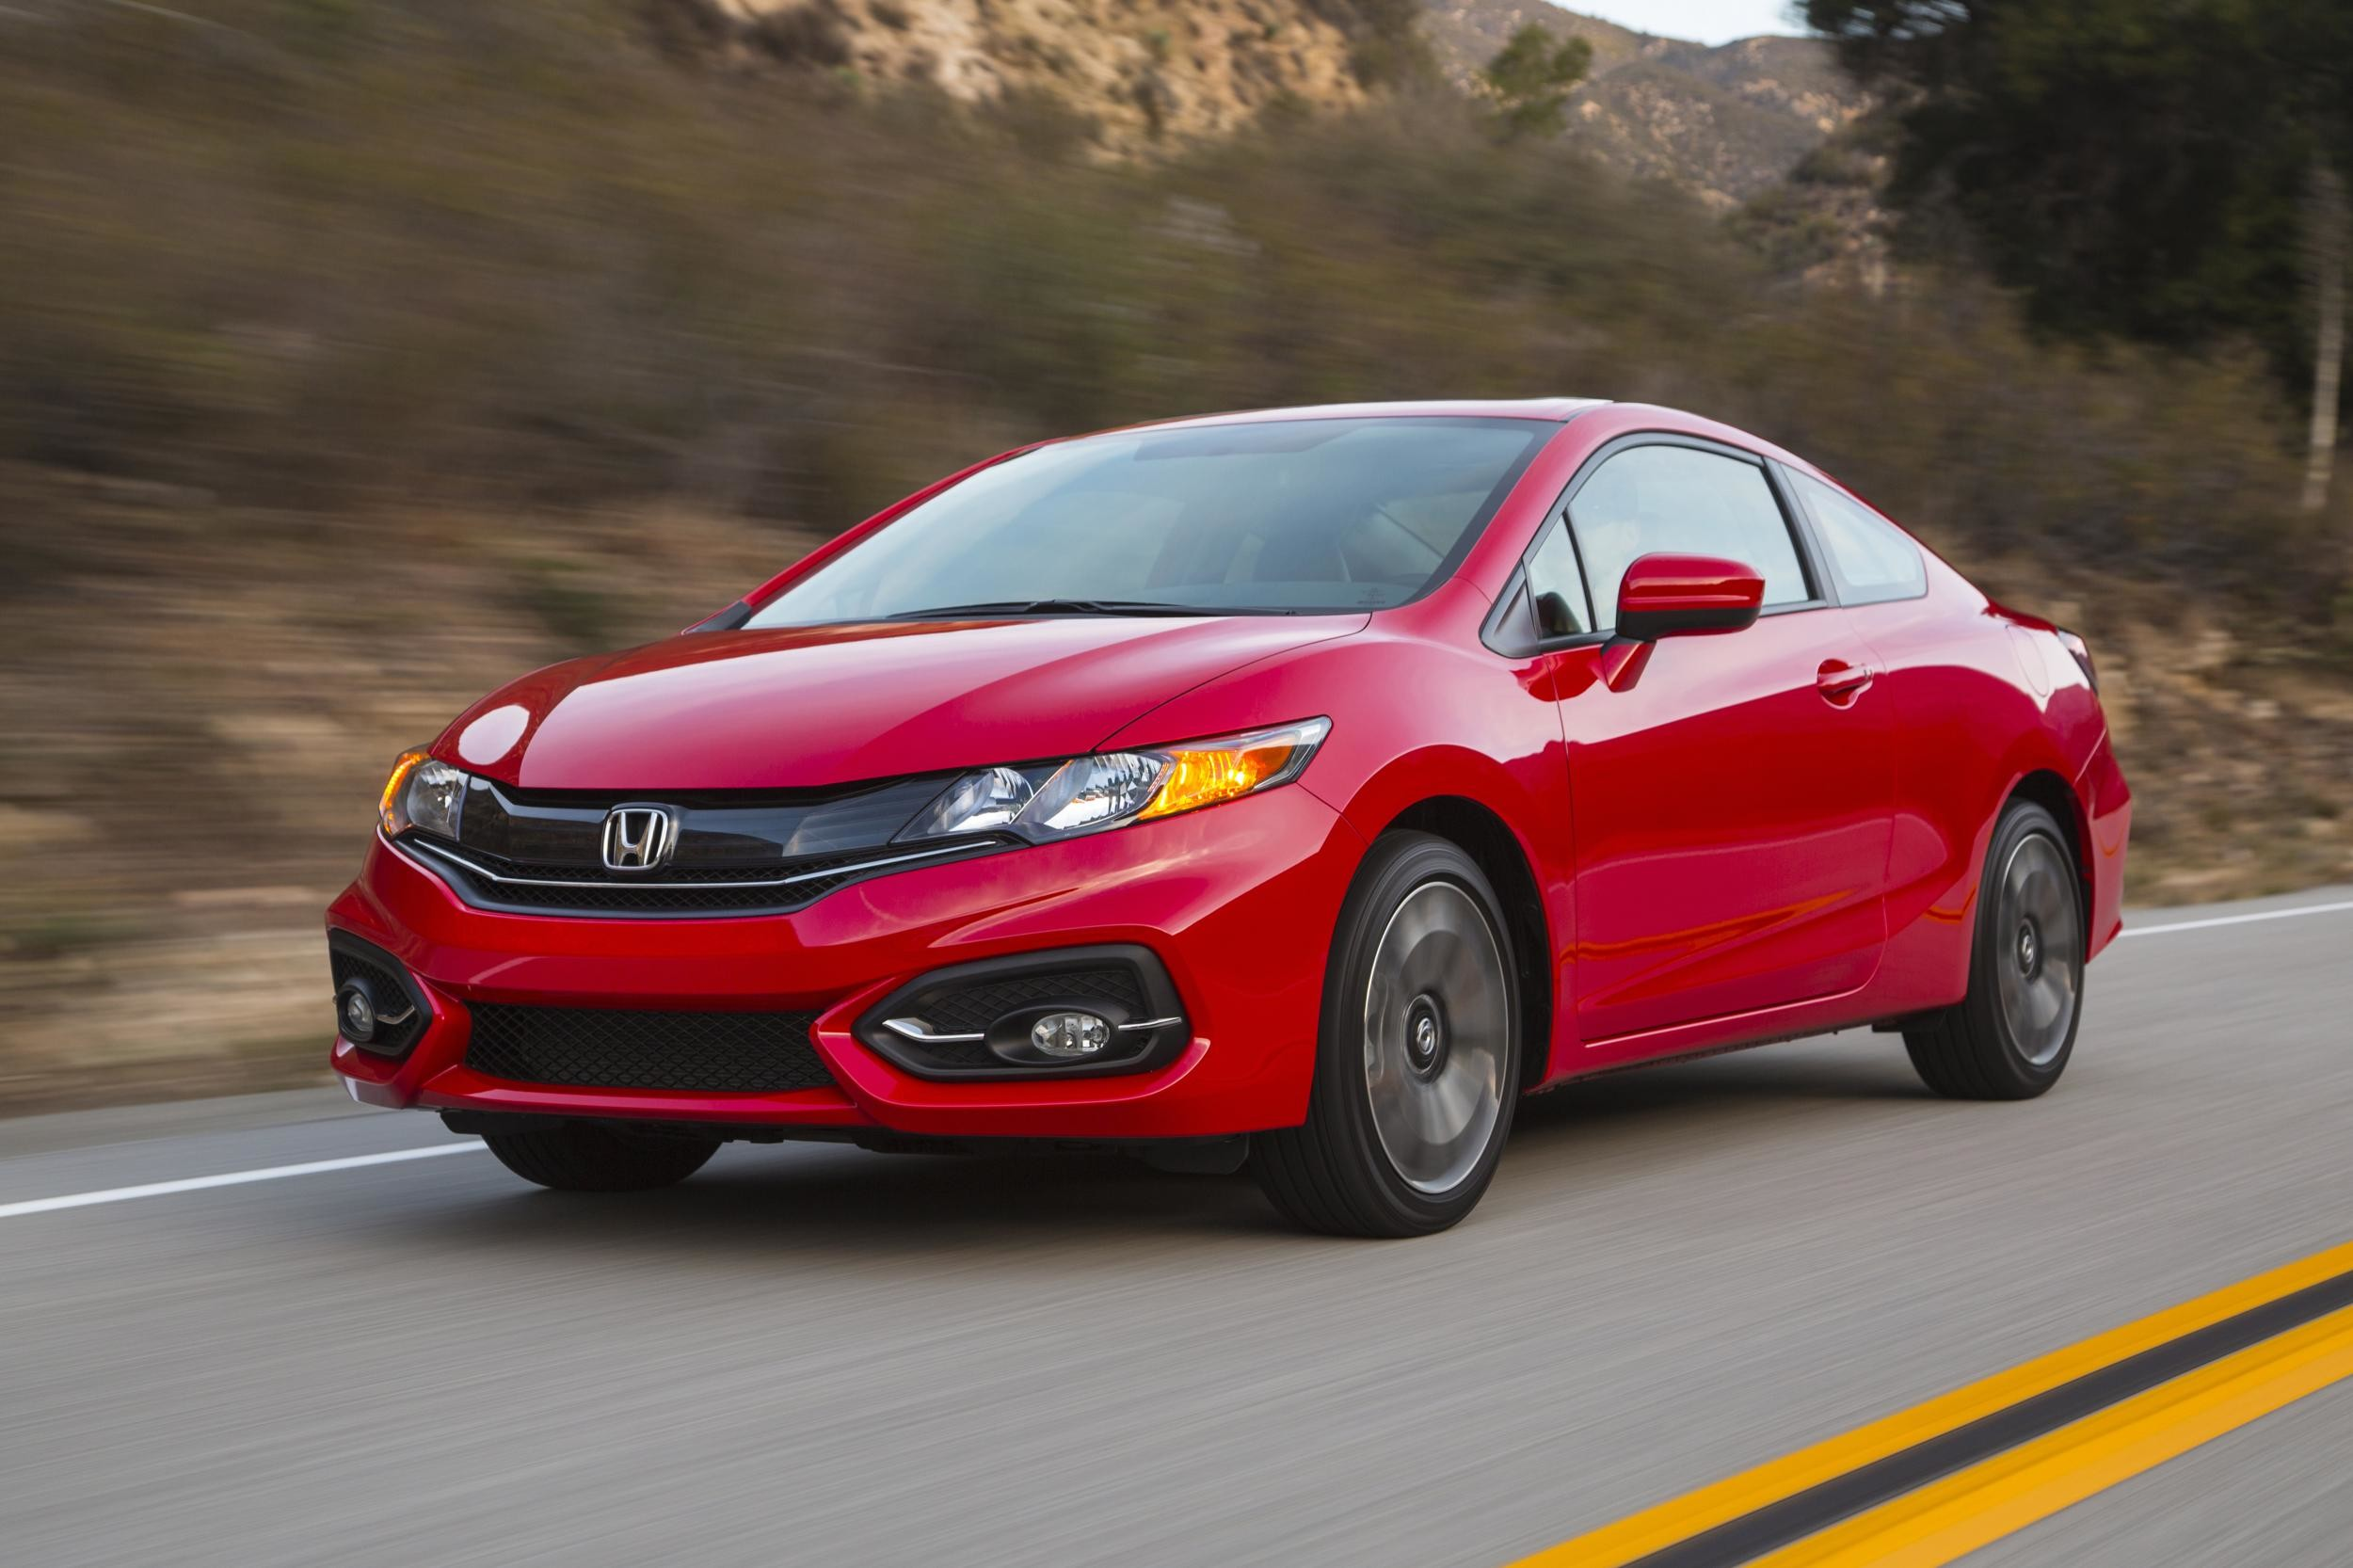 Honda Civic Si Wallpaper 52 Images